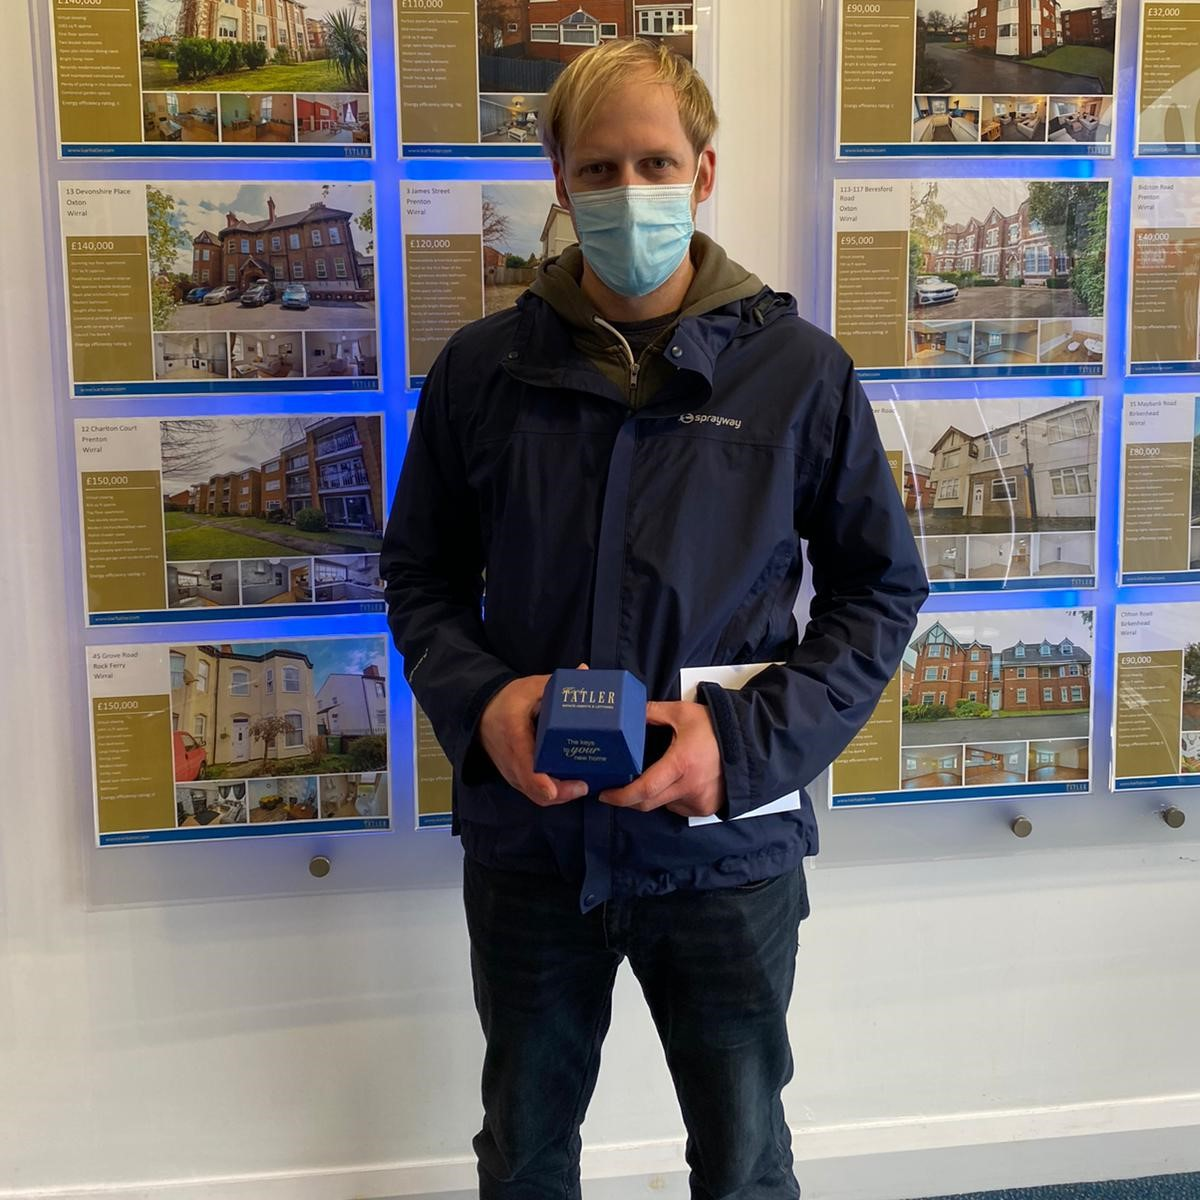 Another happy buyer picking up his keys from our Prenton Branch! Congratulations we wish you all the best in your new home💙 . Looking to buy your first or next home on the Wirral? Call Team KT! . #karltatler #estateagents #wirral #newhome #newkeys #completion #happy #property